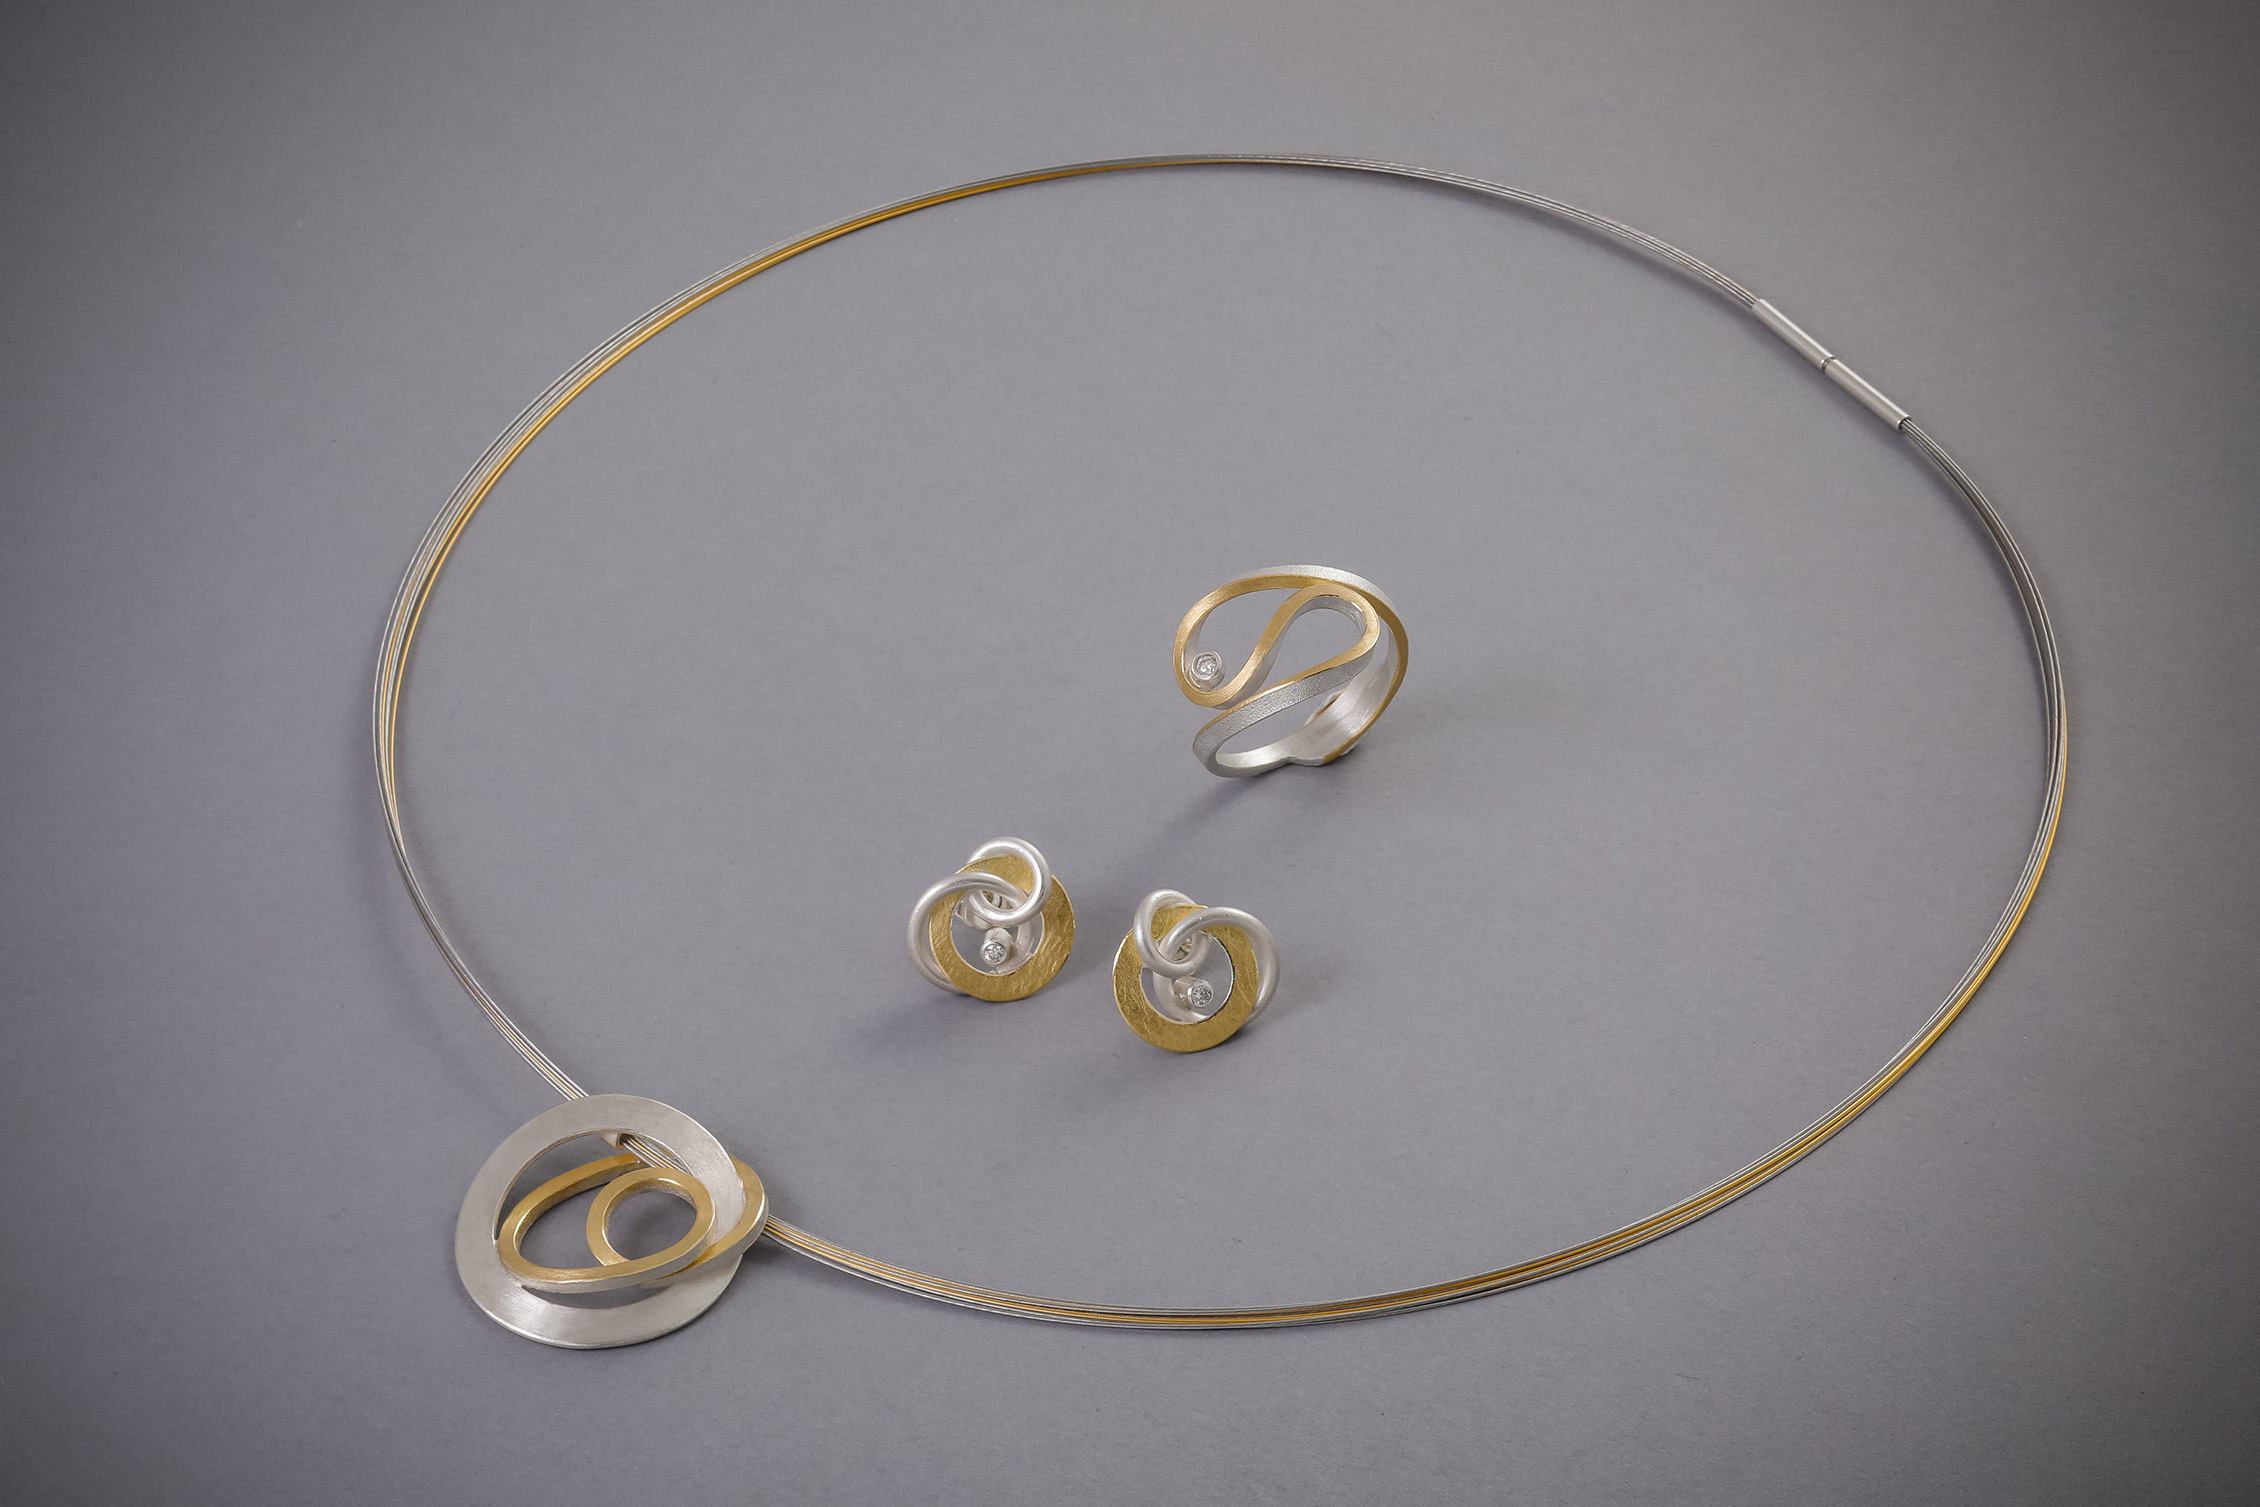 110 Silber mit Goldbelötung, Collier ab € 294,-, Ohrringe, Brillant, ab € 338,-, Ring, Brillant, ab € 438,-